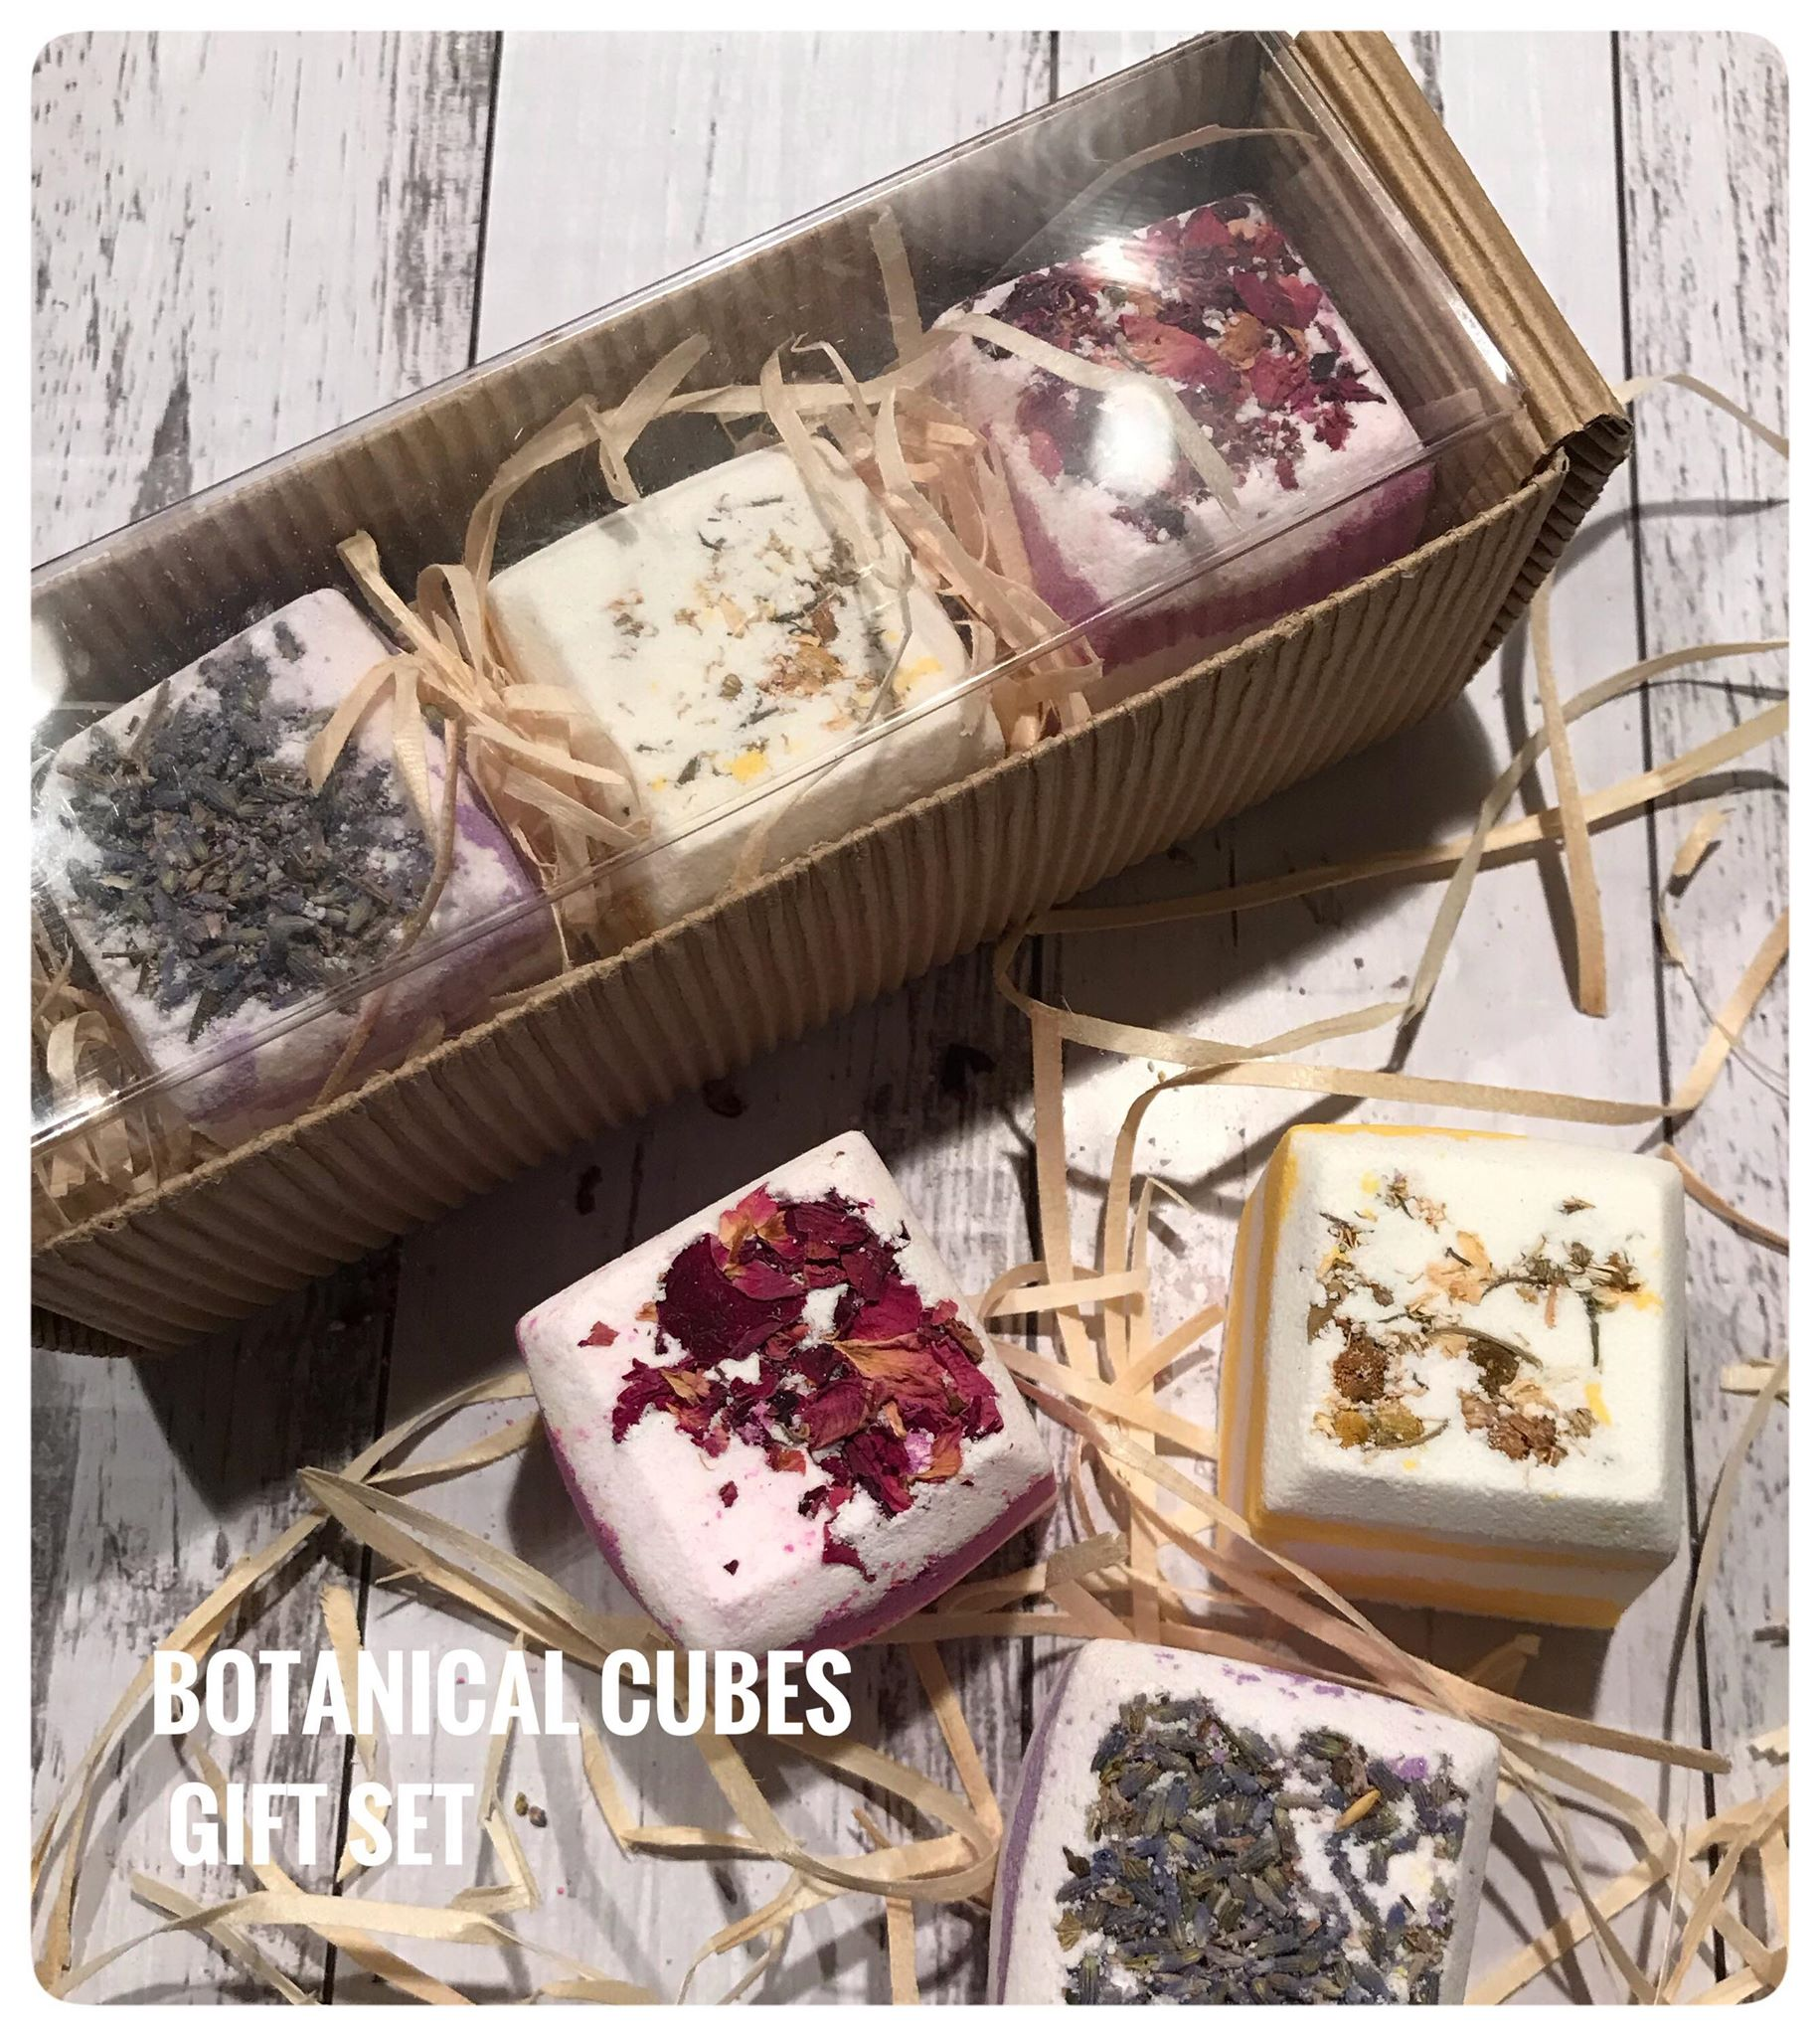 Bath Cube Gift Box - Botanicals